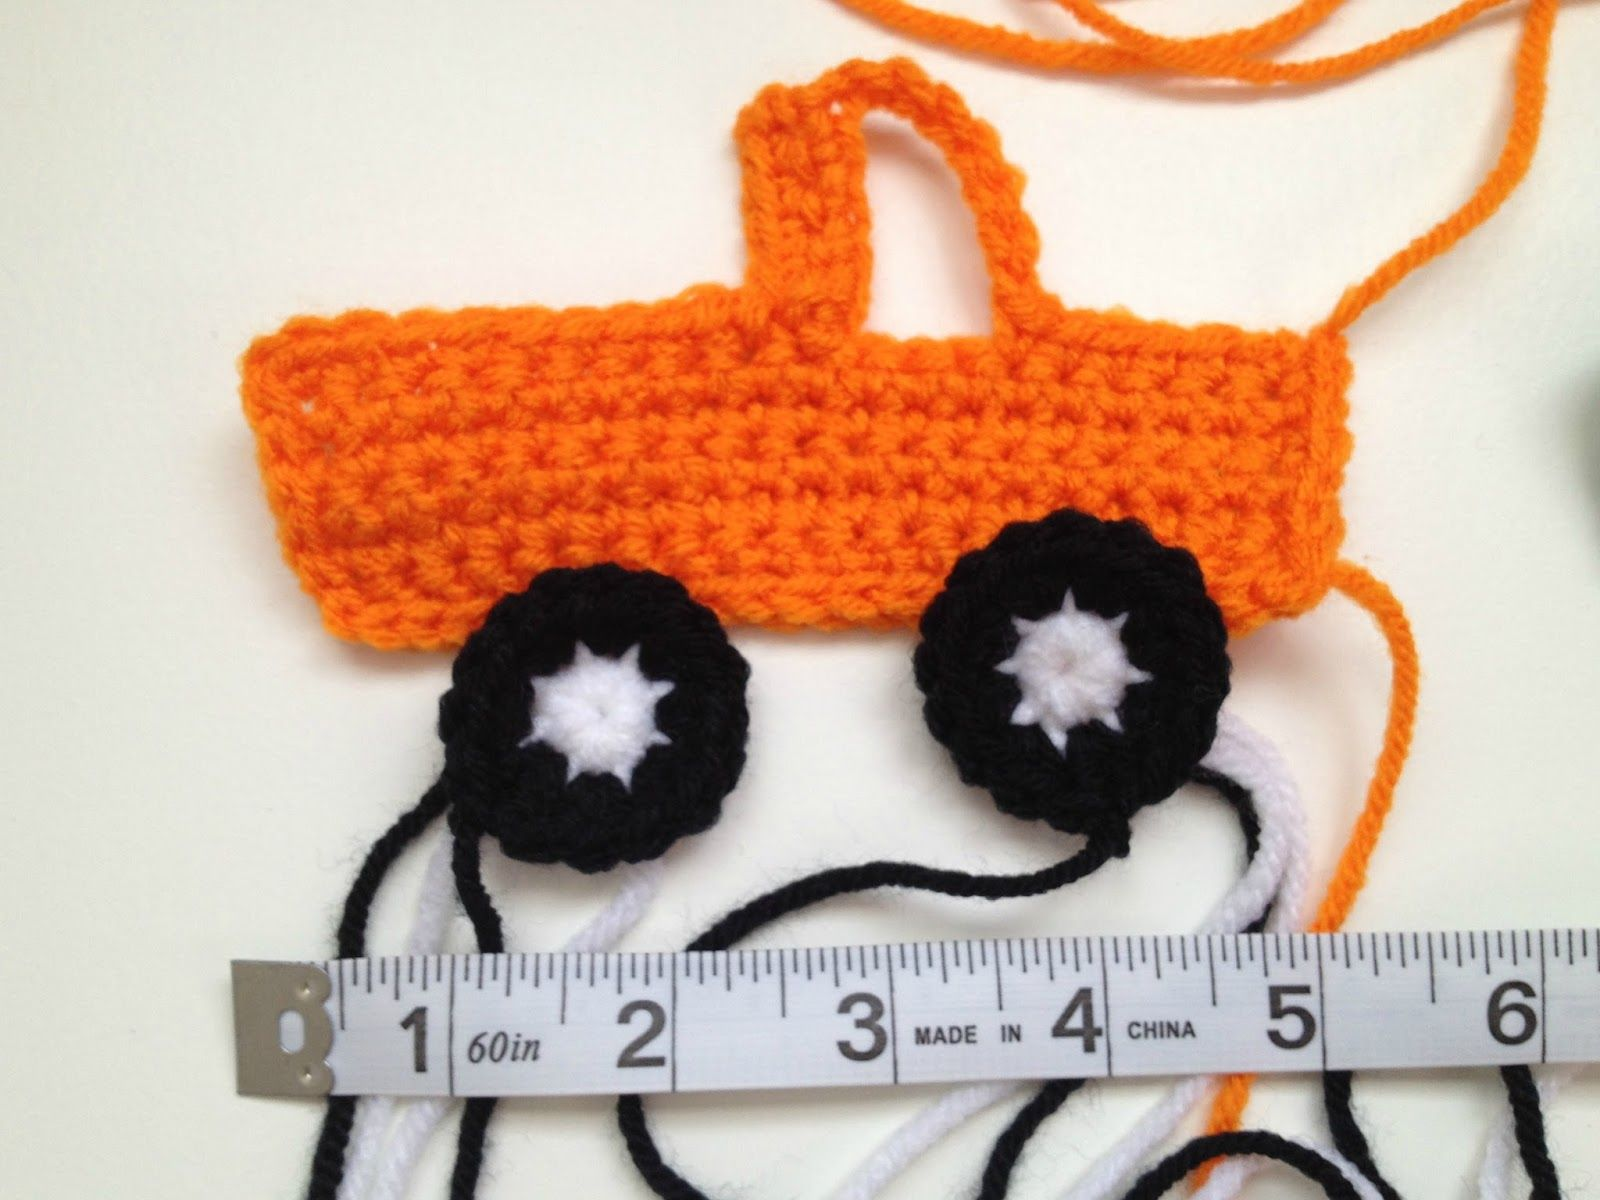 Free Crochet Pattern: Pick-Up Truck Applique | Crochet | Pinterest ...